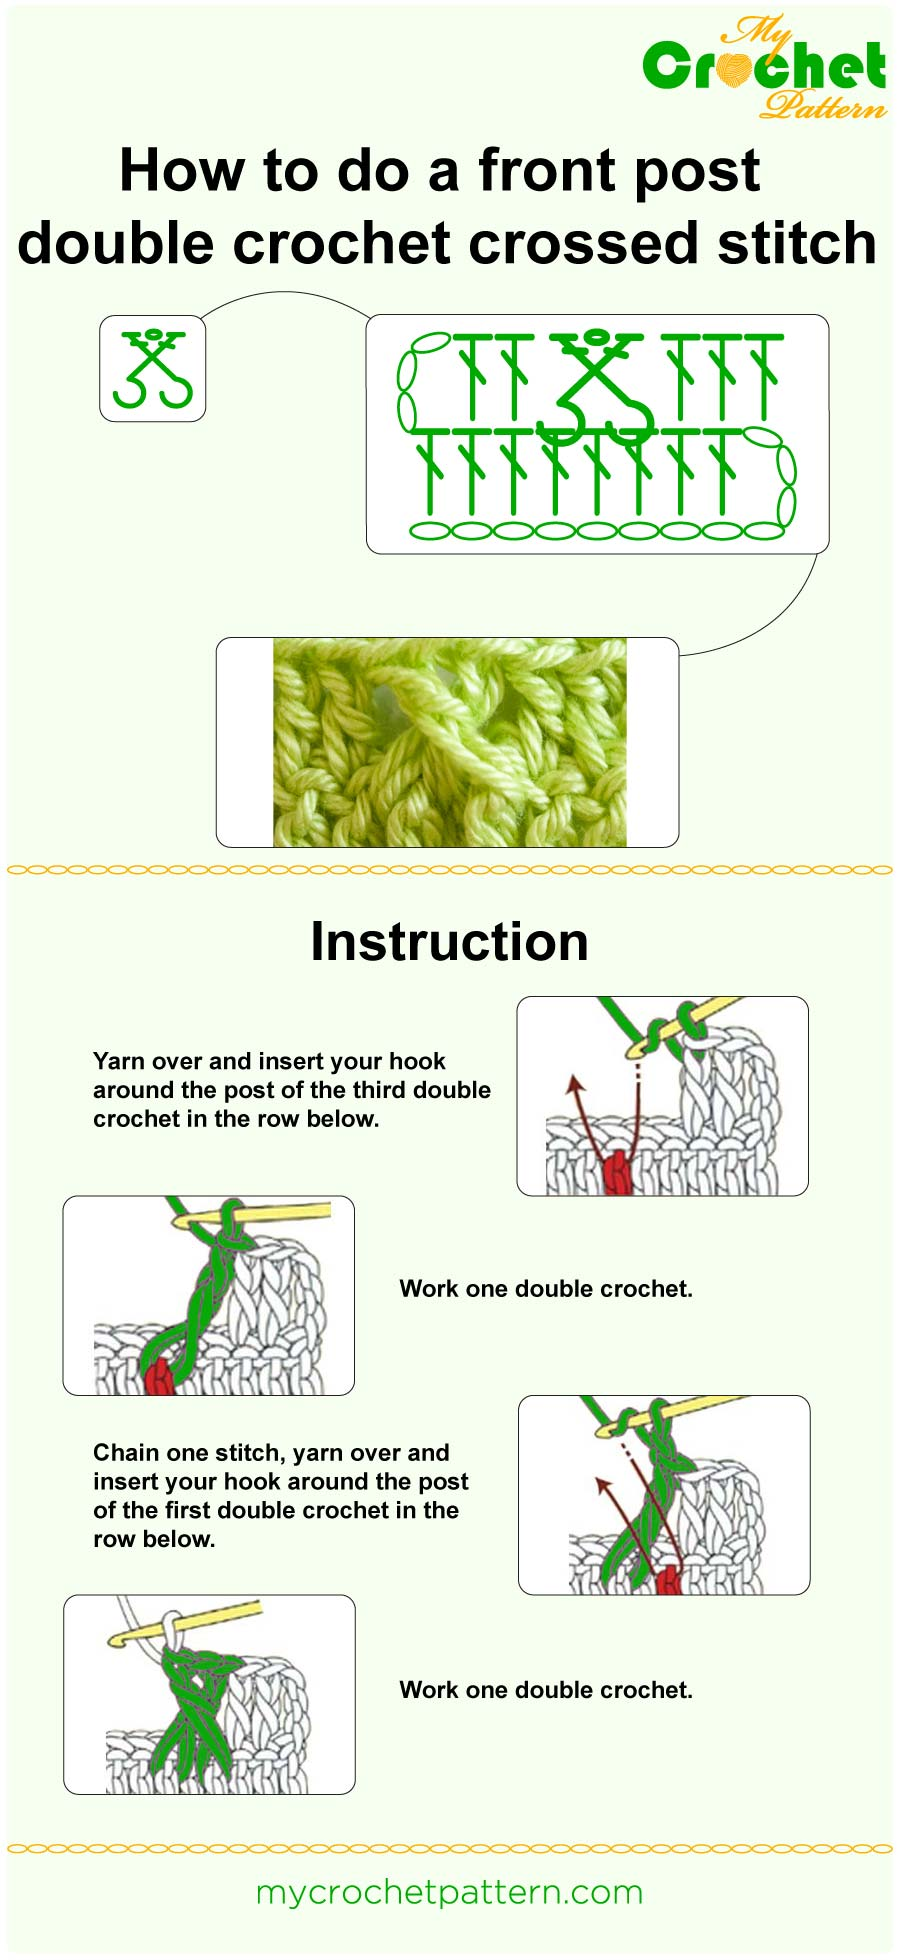 how to do a front post double crochet crossed stitch - infographic